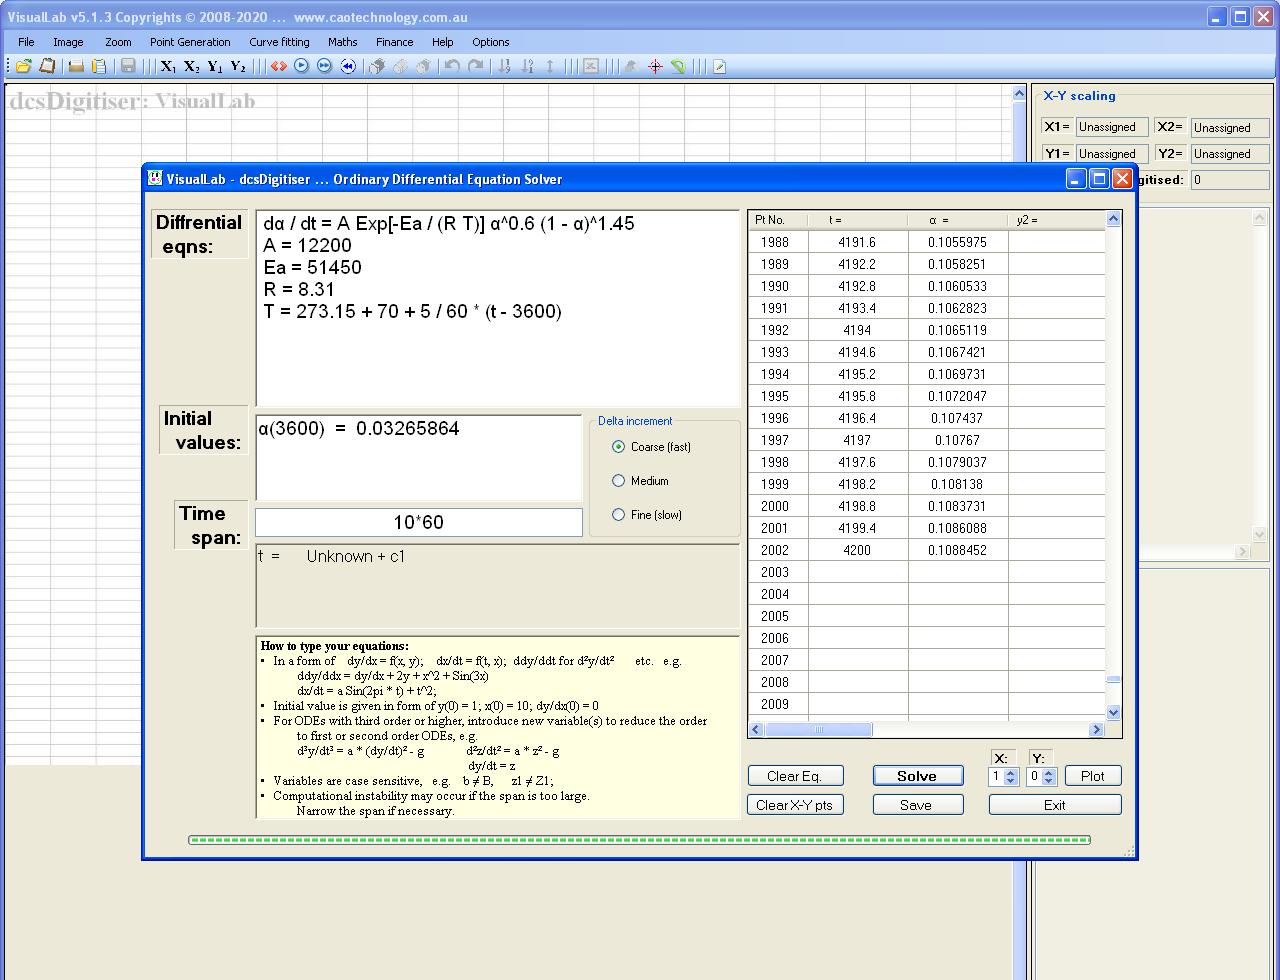 VisualLab computes Arrhenius equation